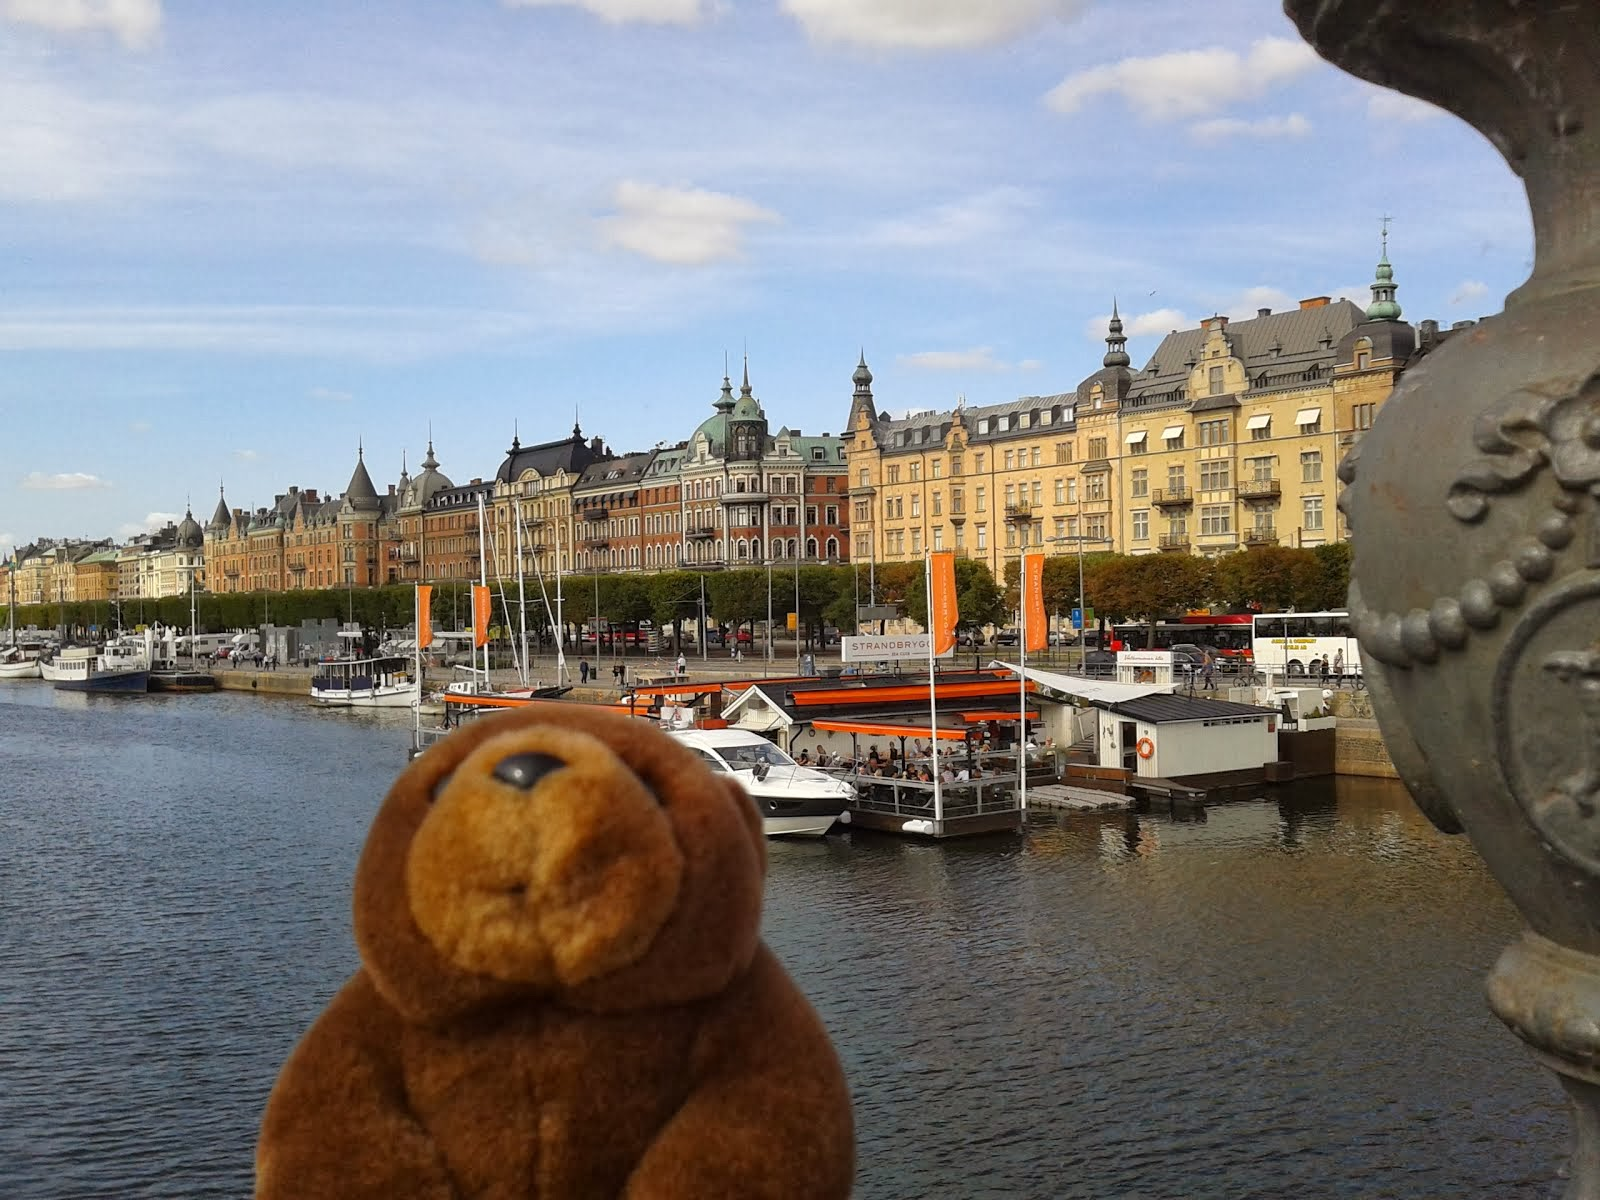 Teddy Bear in Stockholm